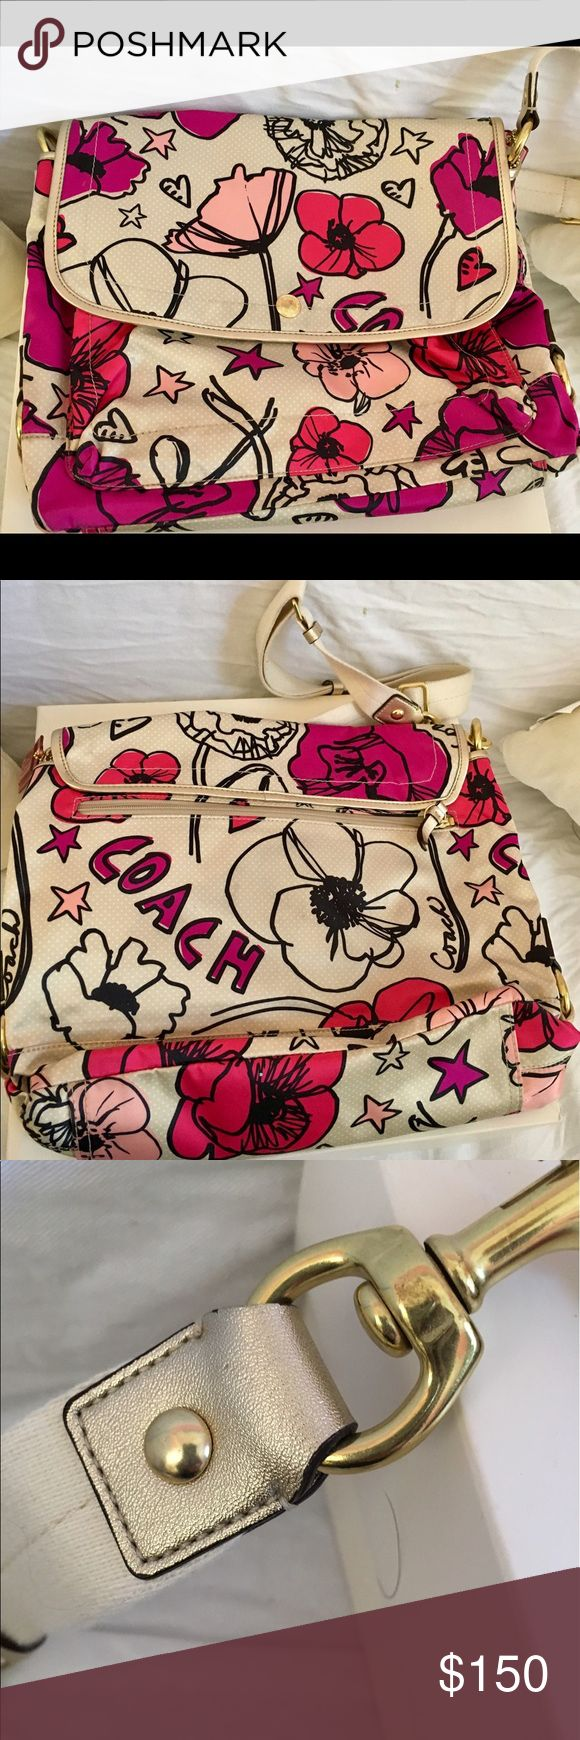 COACH POPPY FLORAL MESSENGER BAG VERY PRETTY This is a great bag.  Can be used as a handbag or carrying case for laptop.  Beautiful Poppy Floral Fabric with pink tones on an ivory background. Gold tone accents and hardware. Coach Bags Satchels